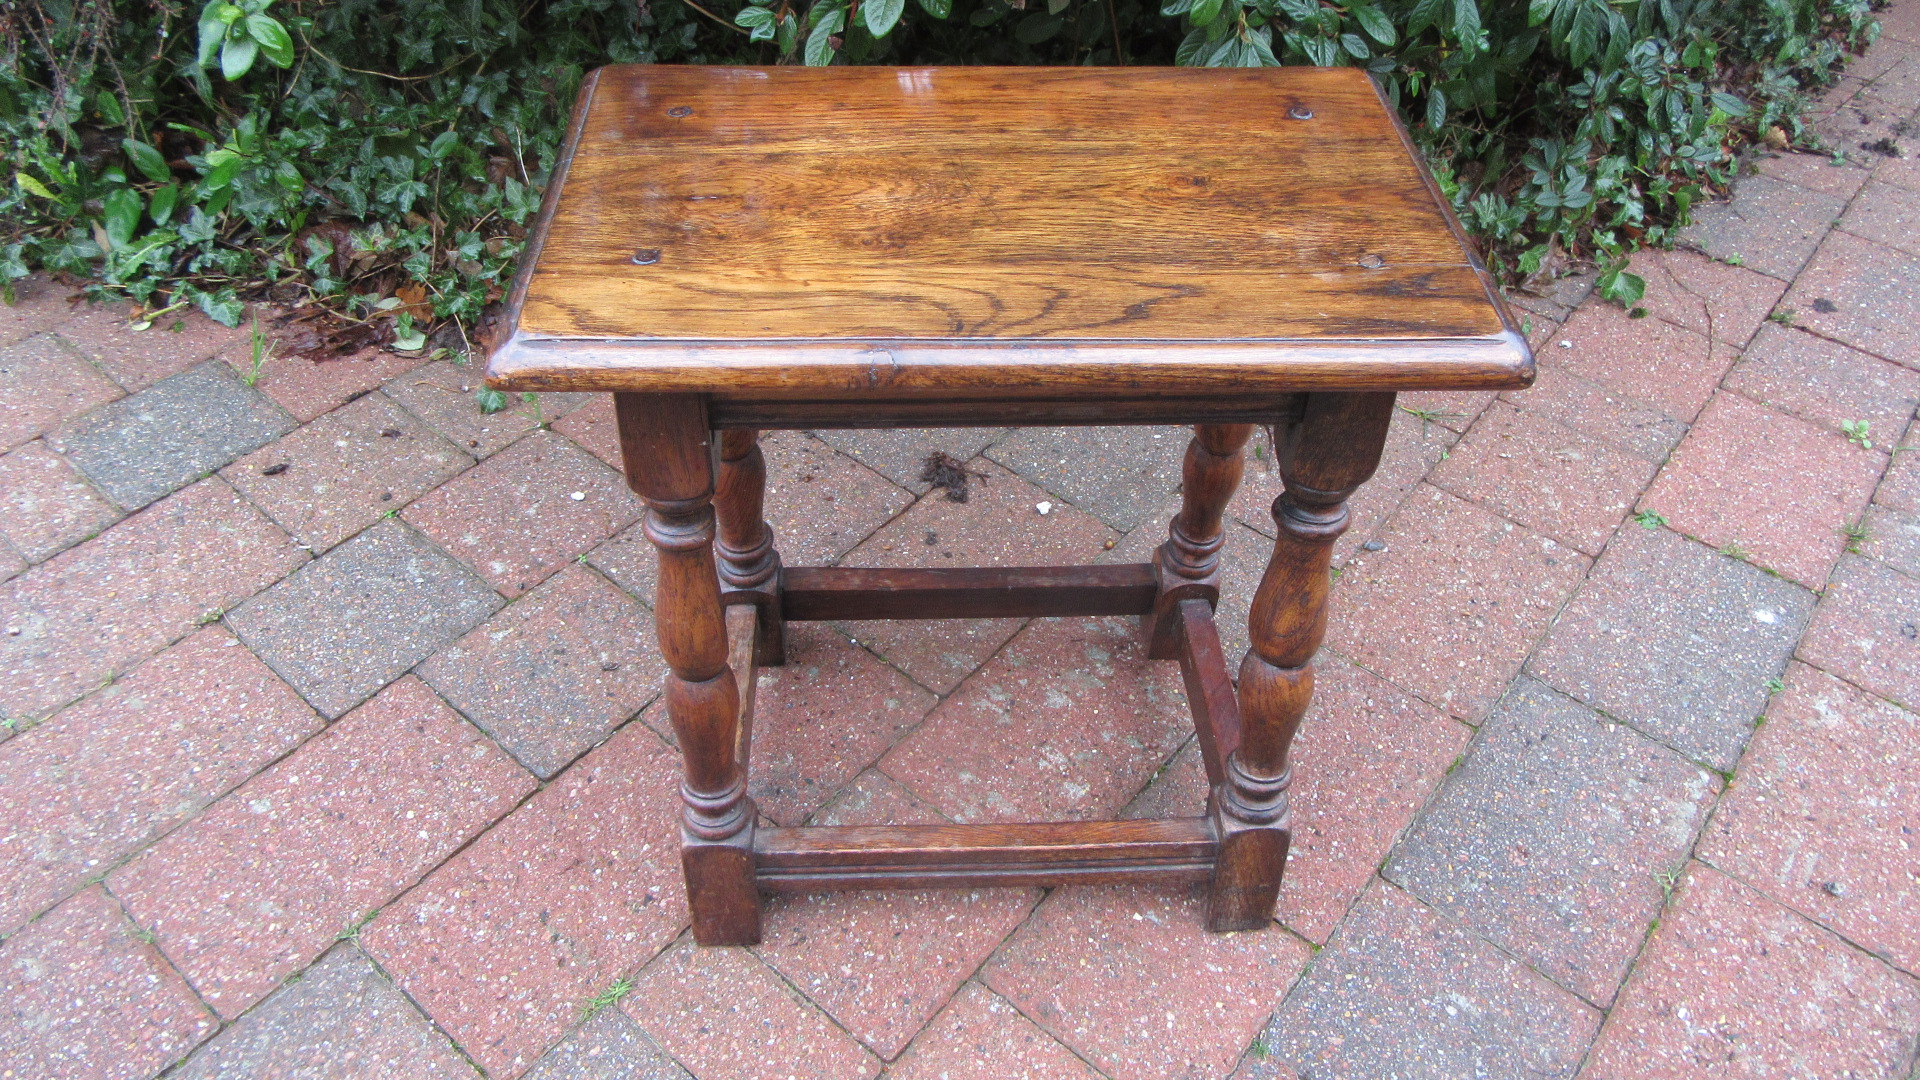 IPSWICH OAK JOINT STOOL